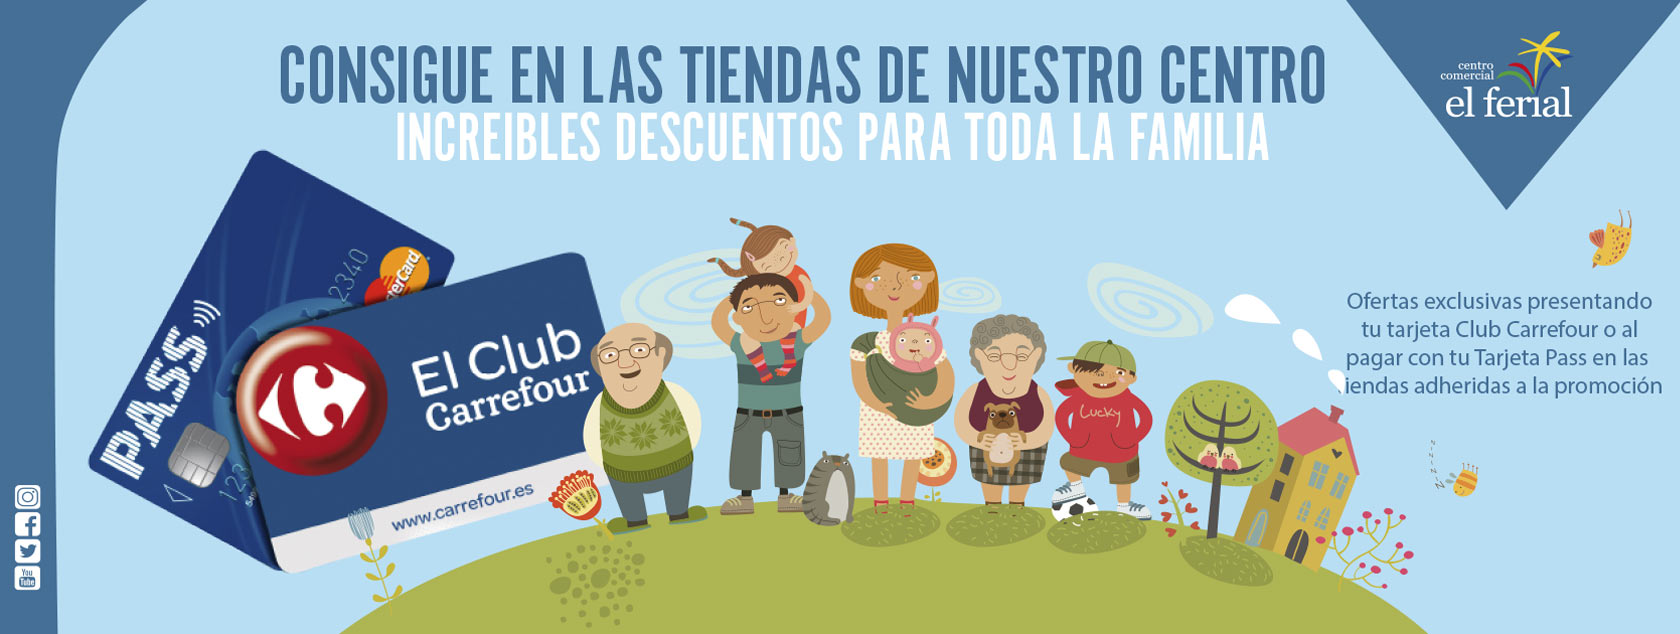 Ofertas exclusivas con tu tarjeta Club Carrefour o PASS